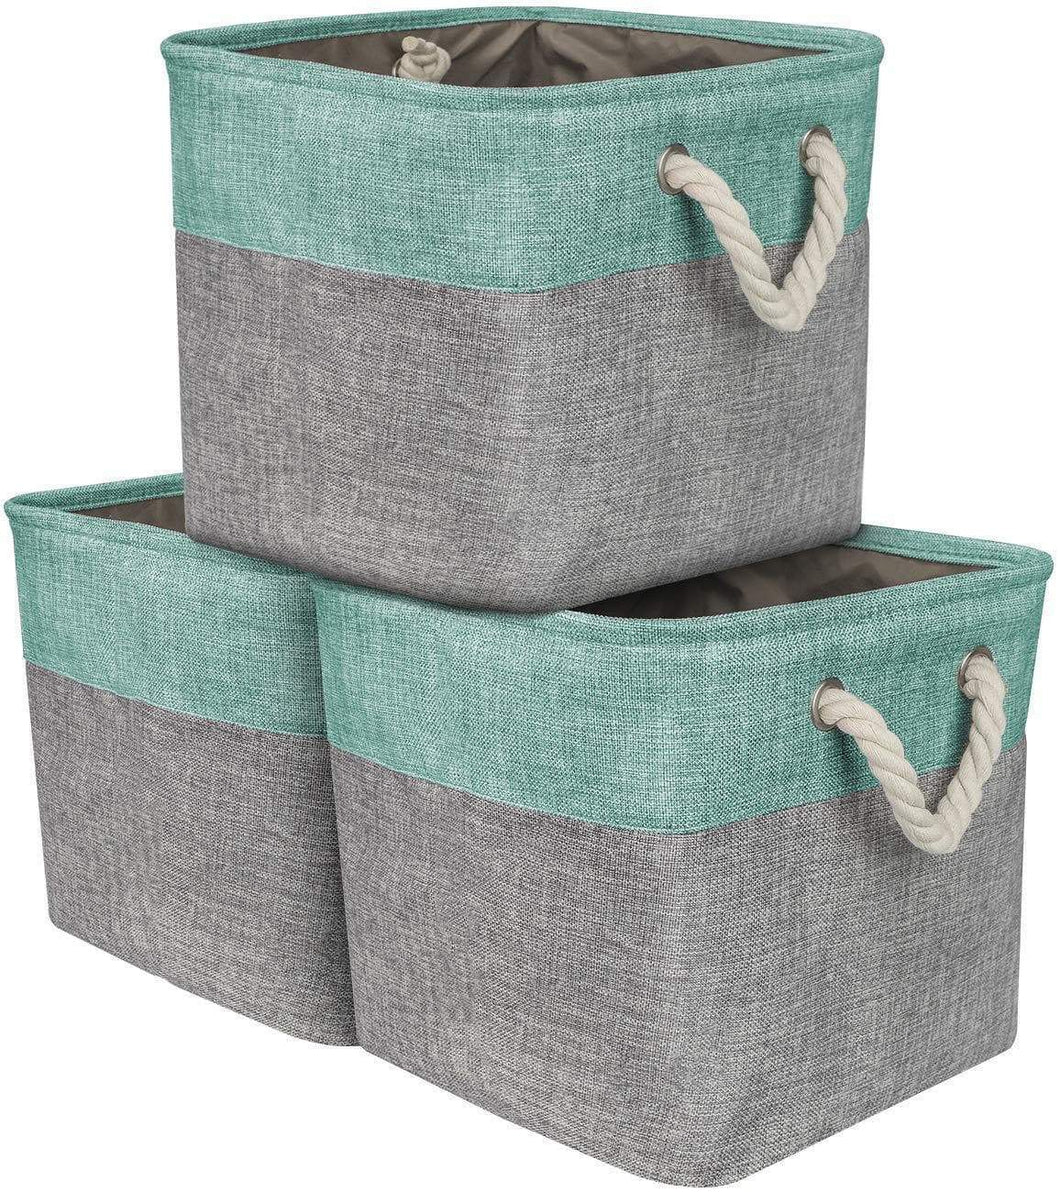 Storage organizer sorbus storage large basket set 3 pack big rectangular fabric collapsible organizer bin with cotton rope carry handles for linens toys clothes kids room nursery woven rope basket teal